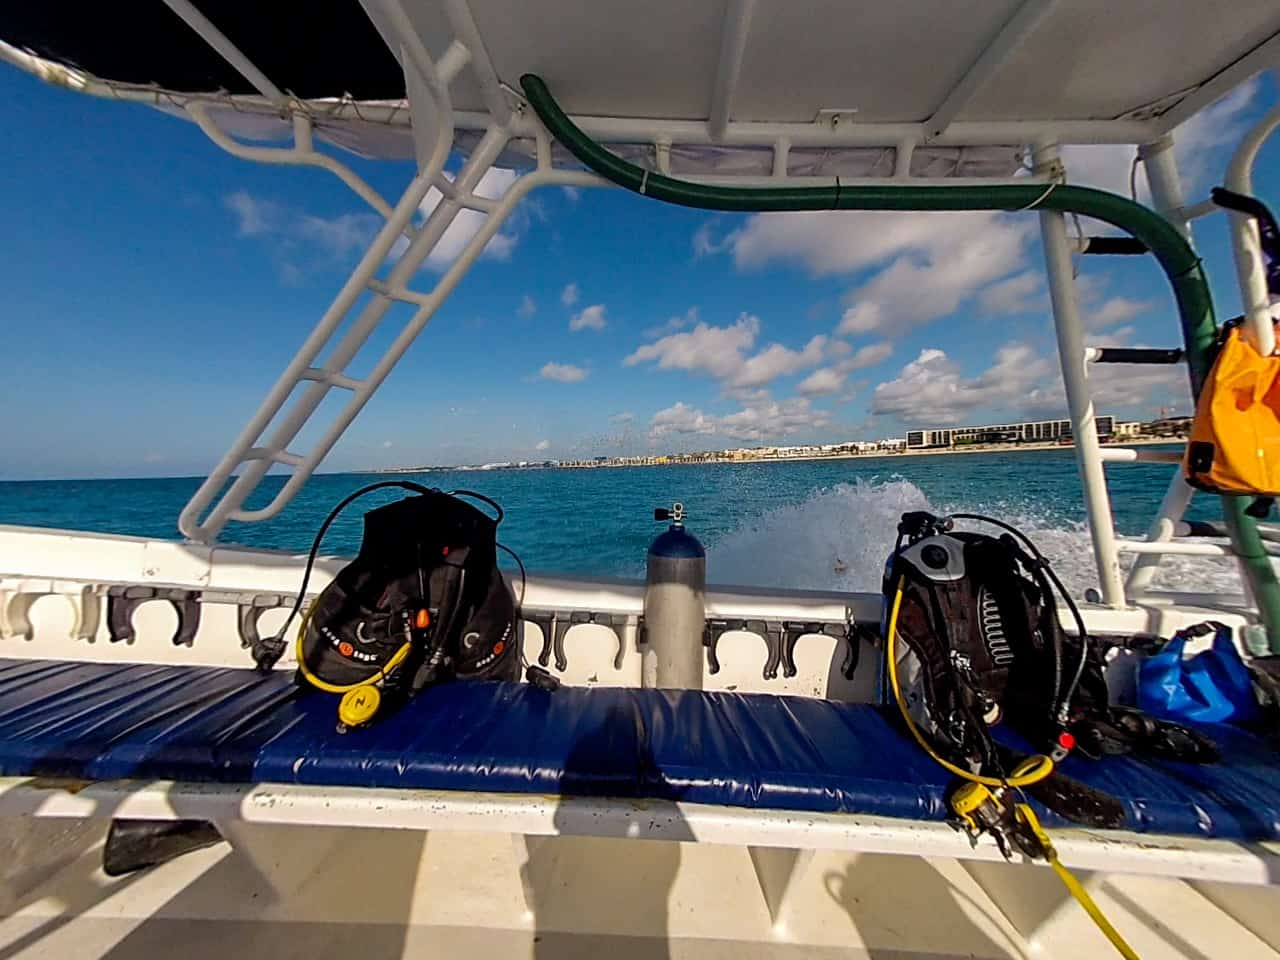 Cozumel diving - Our dive boat on the way to beautiful Cozumel